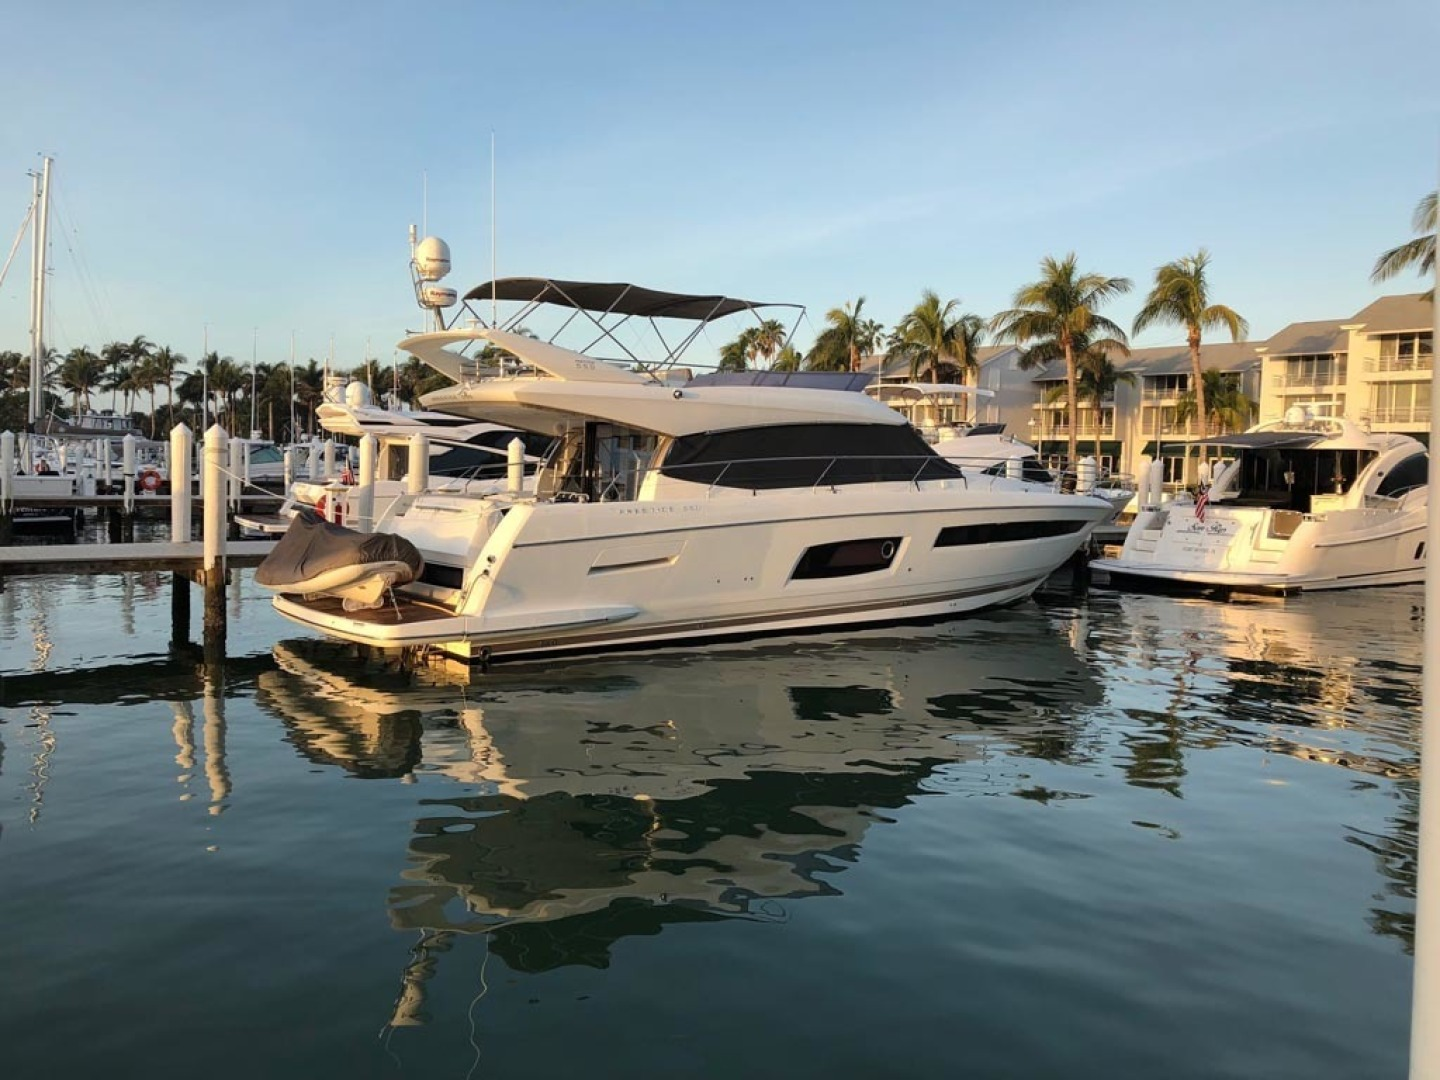 Prestige-550 2015-Higher Powered II Palm Coast-Florida-United States-Starboard Aft Profile-1300825 | Thumbnail